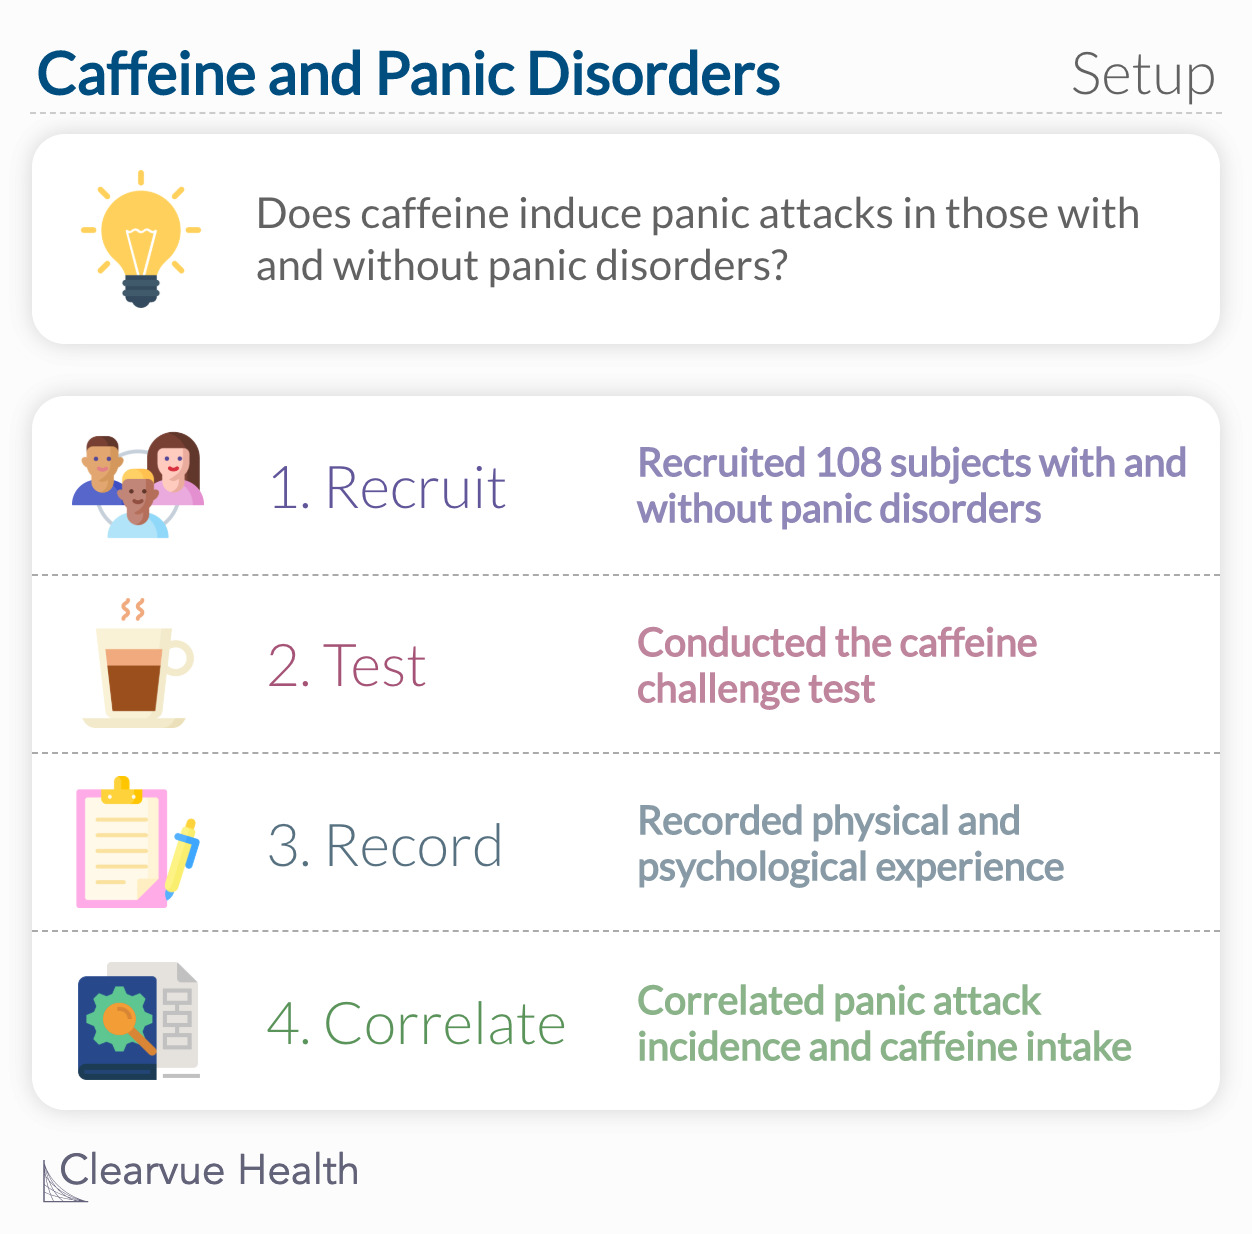 Does caffeine induce panic attacks in those with and without panic disorders?